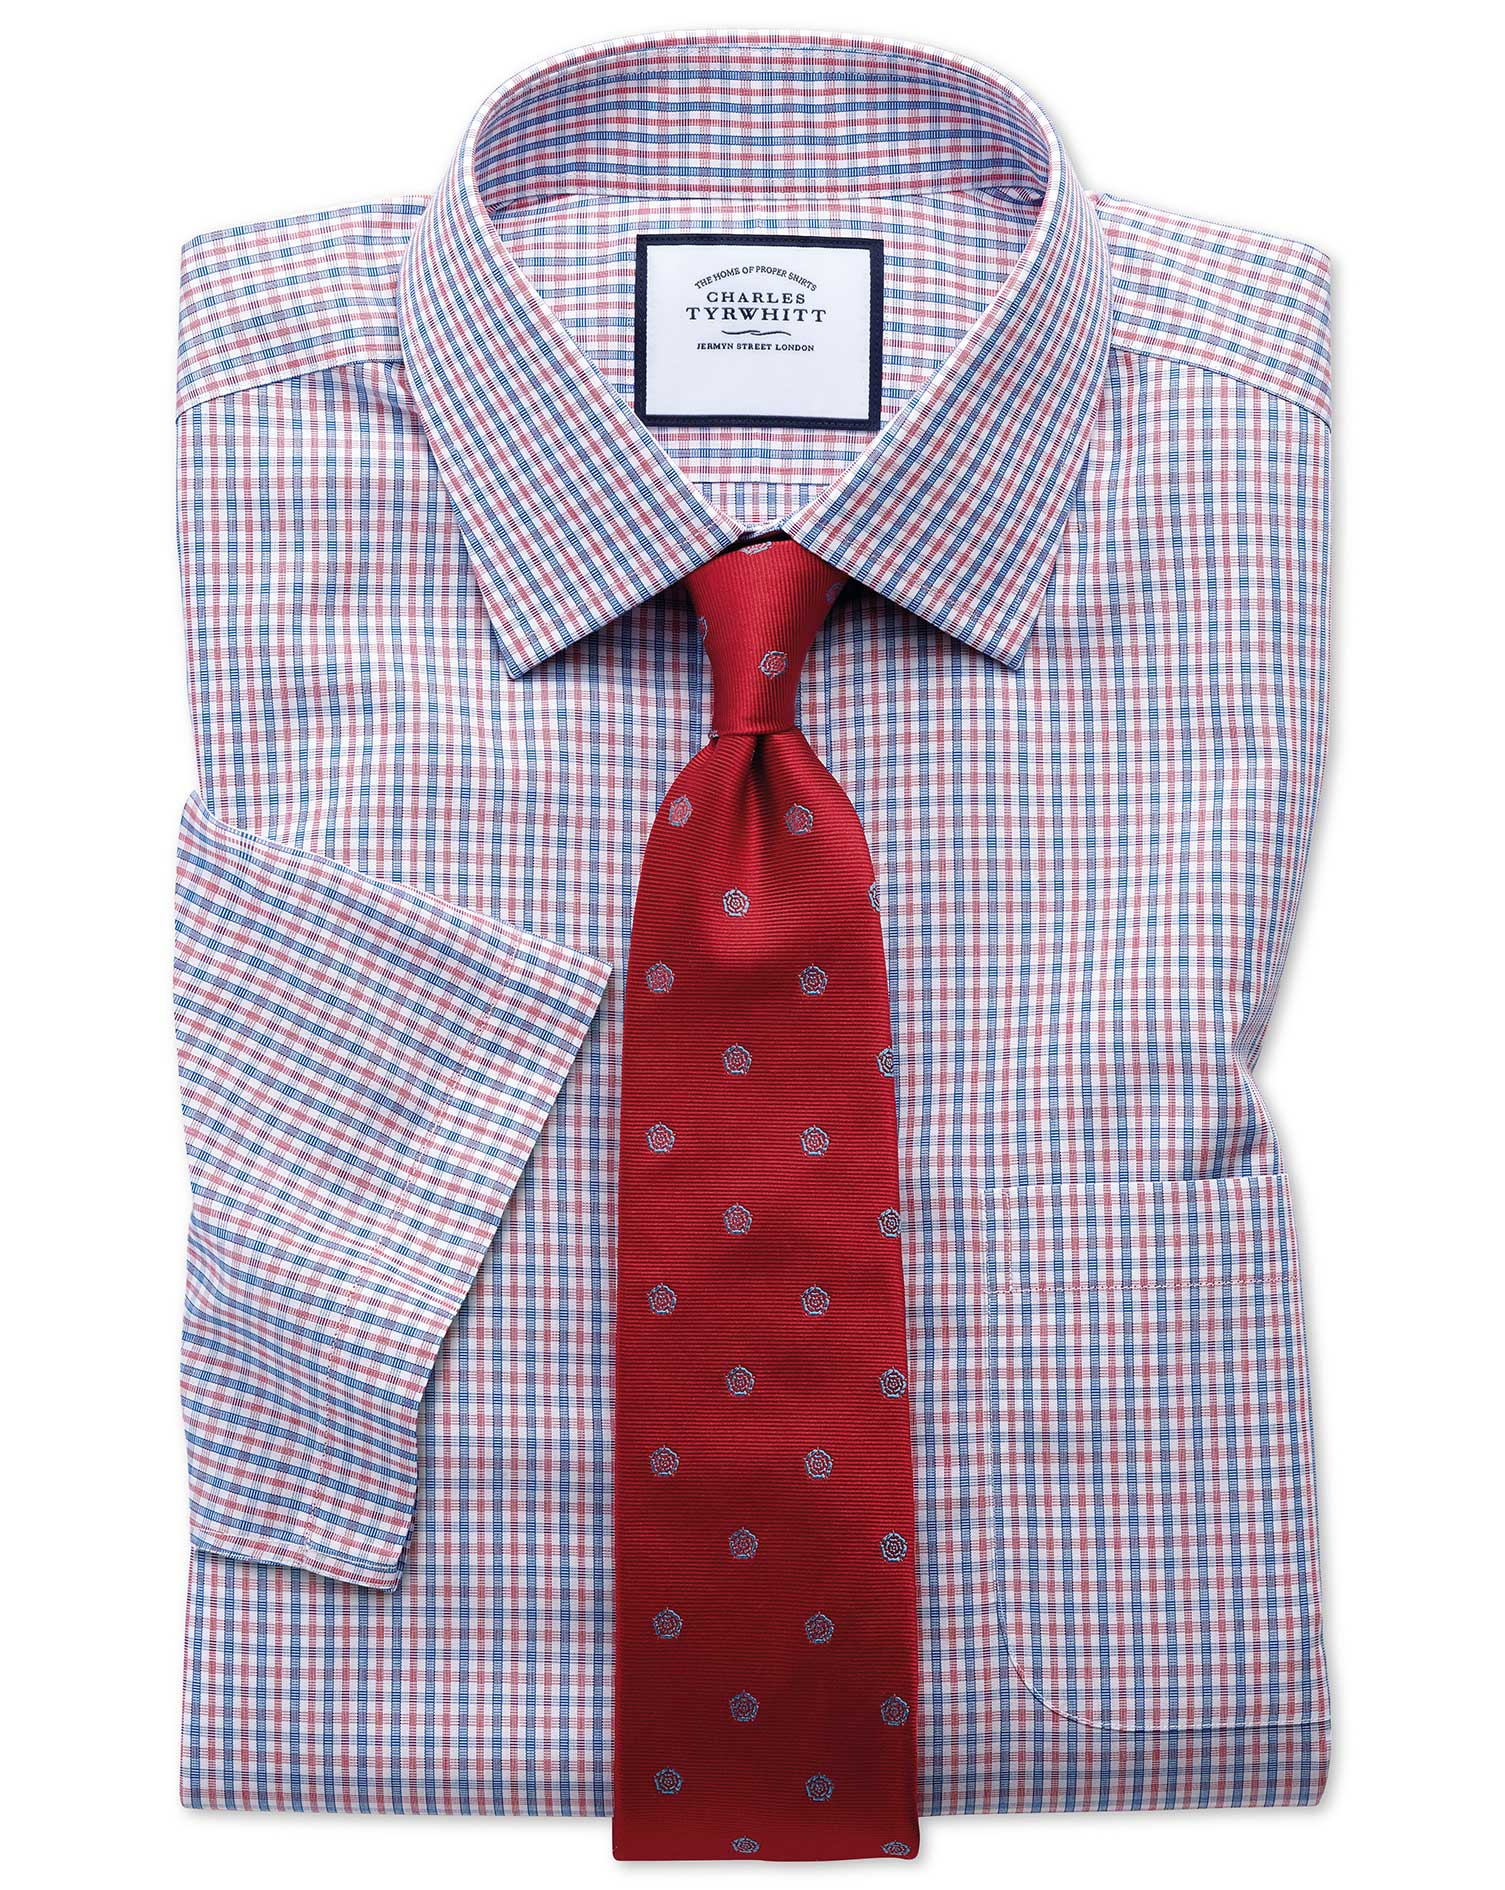 Slim Fit Non-Iron Poplin Short Sleeve Blue and Red Cotton Formal Shirt Size 18/Short by Charles Tyrw